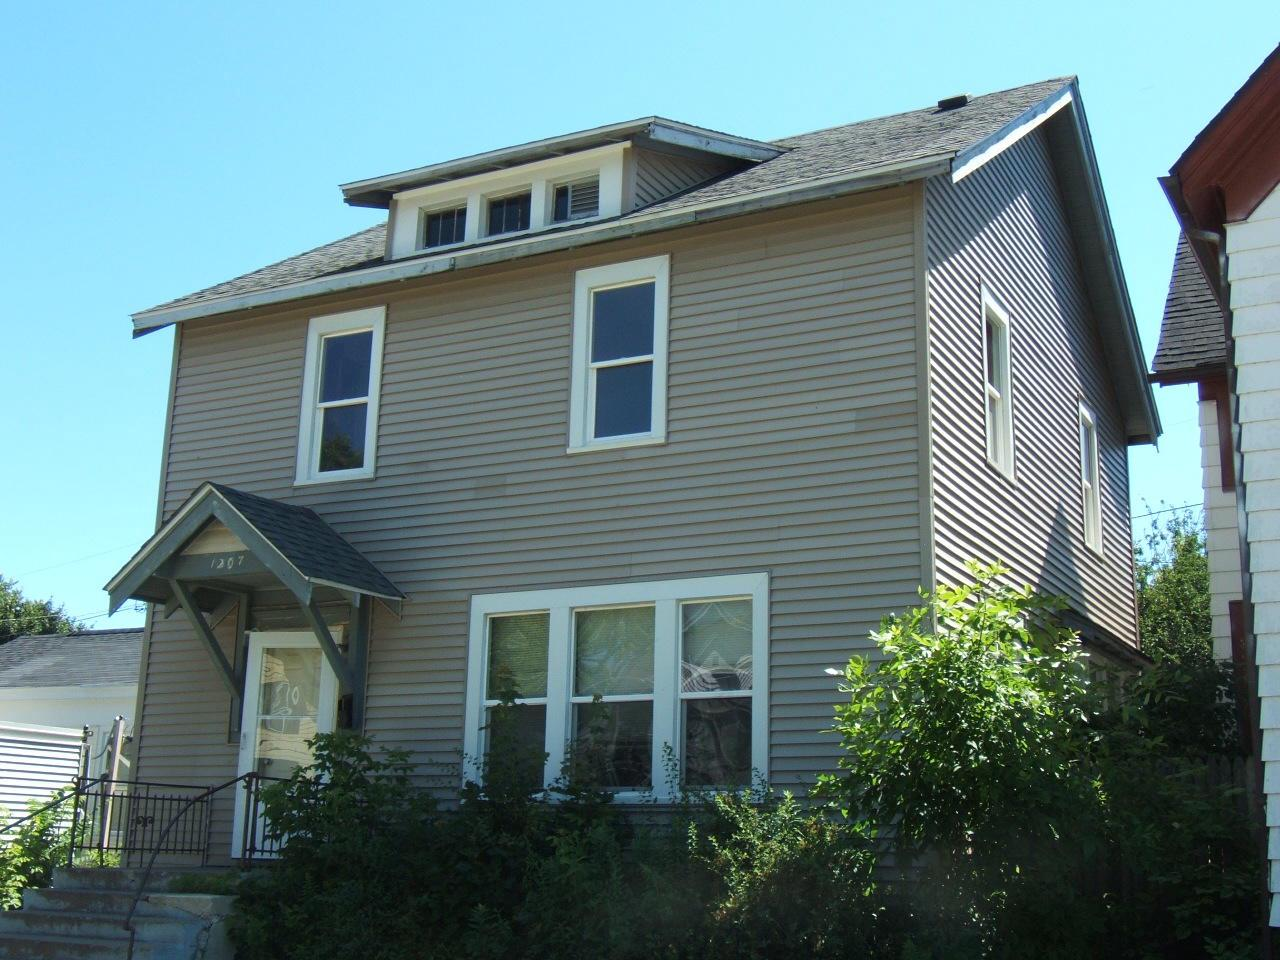 Nice large single family home. Spacious 2 story with partially fenced back yard.